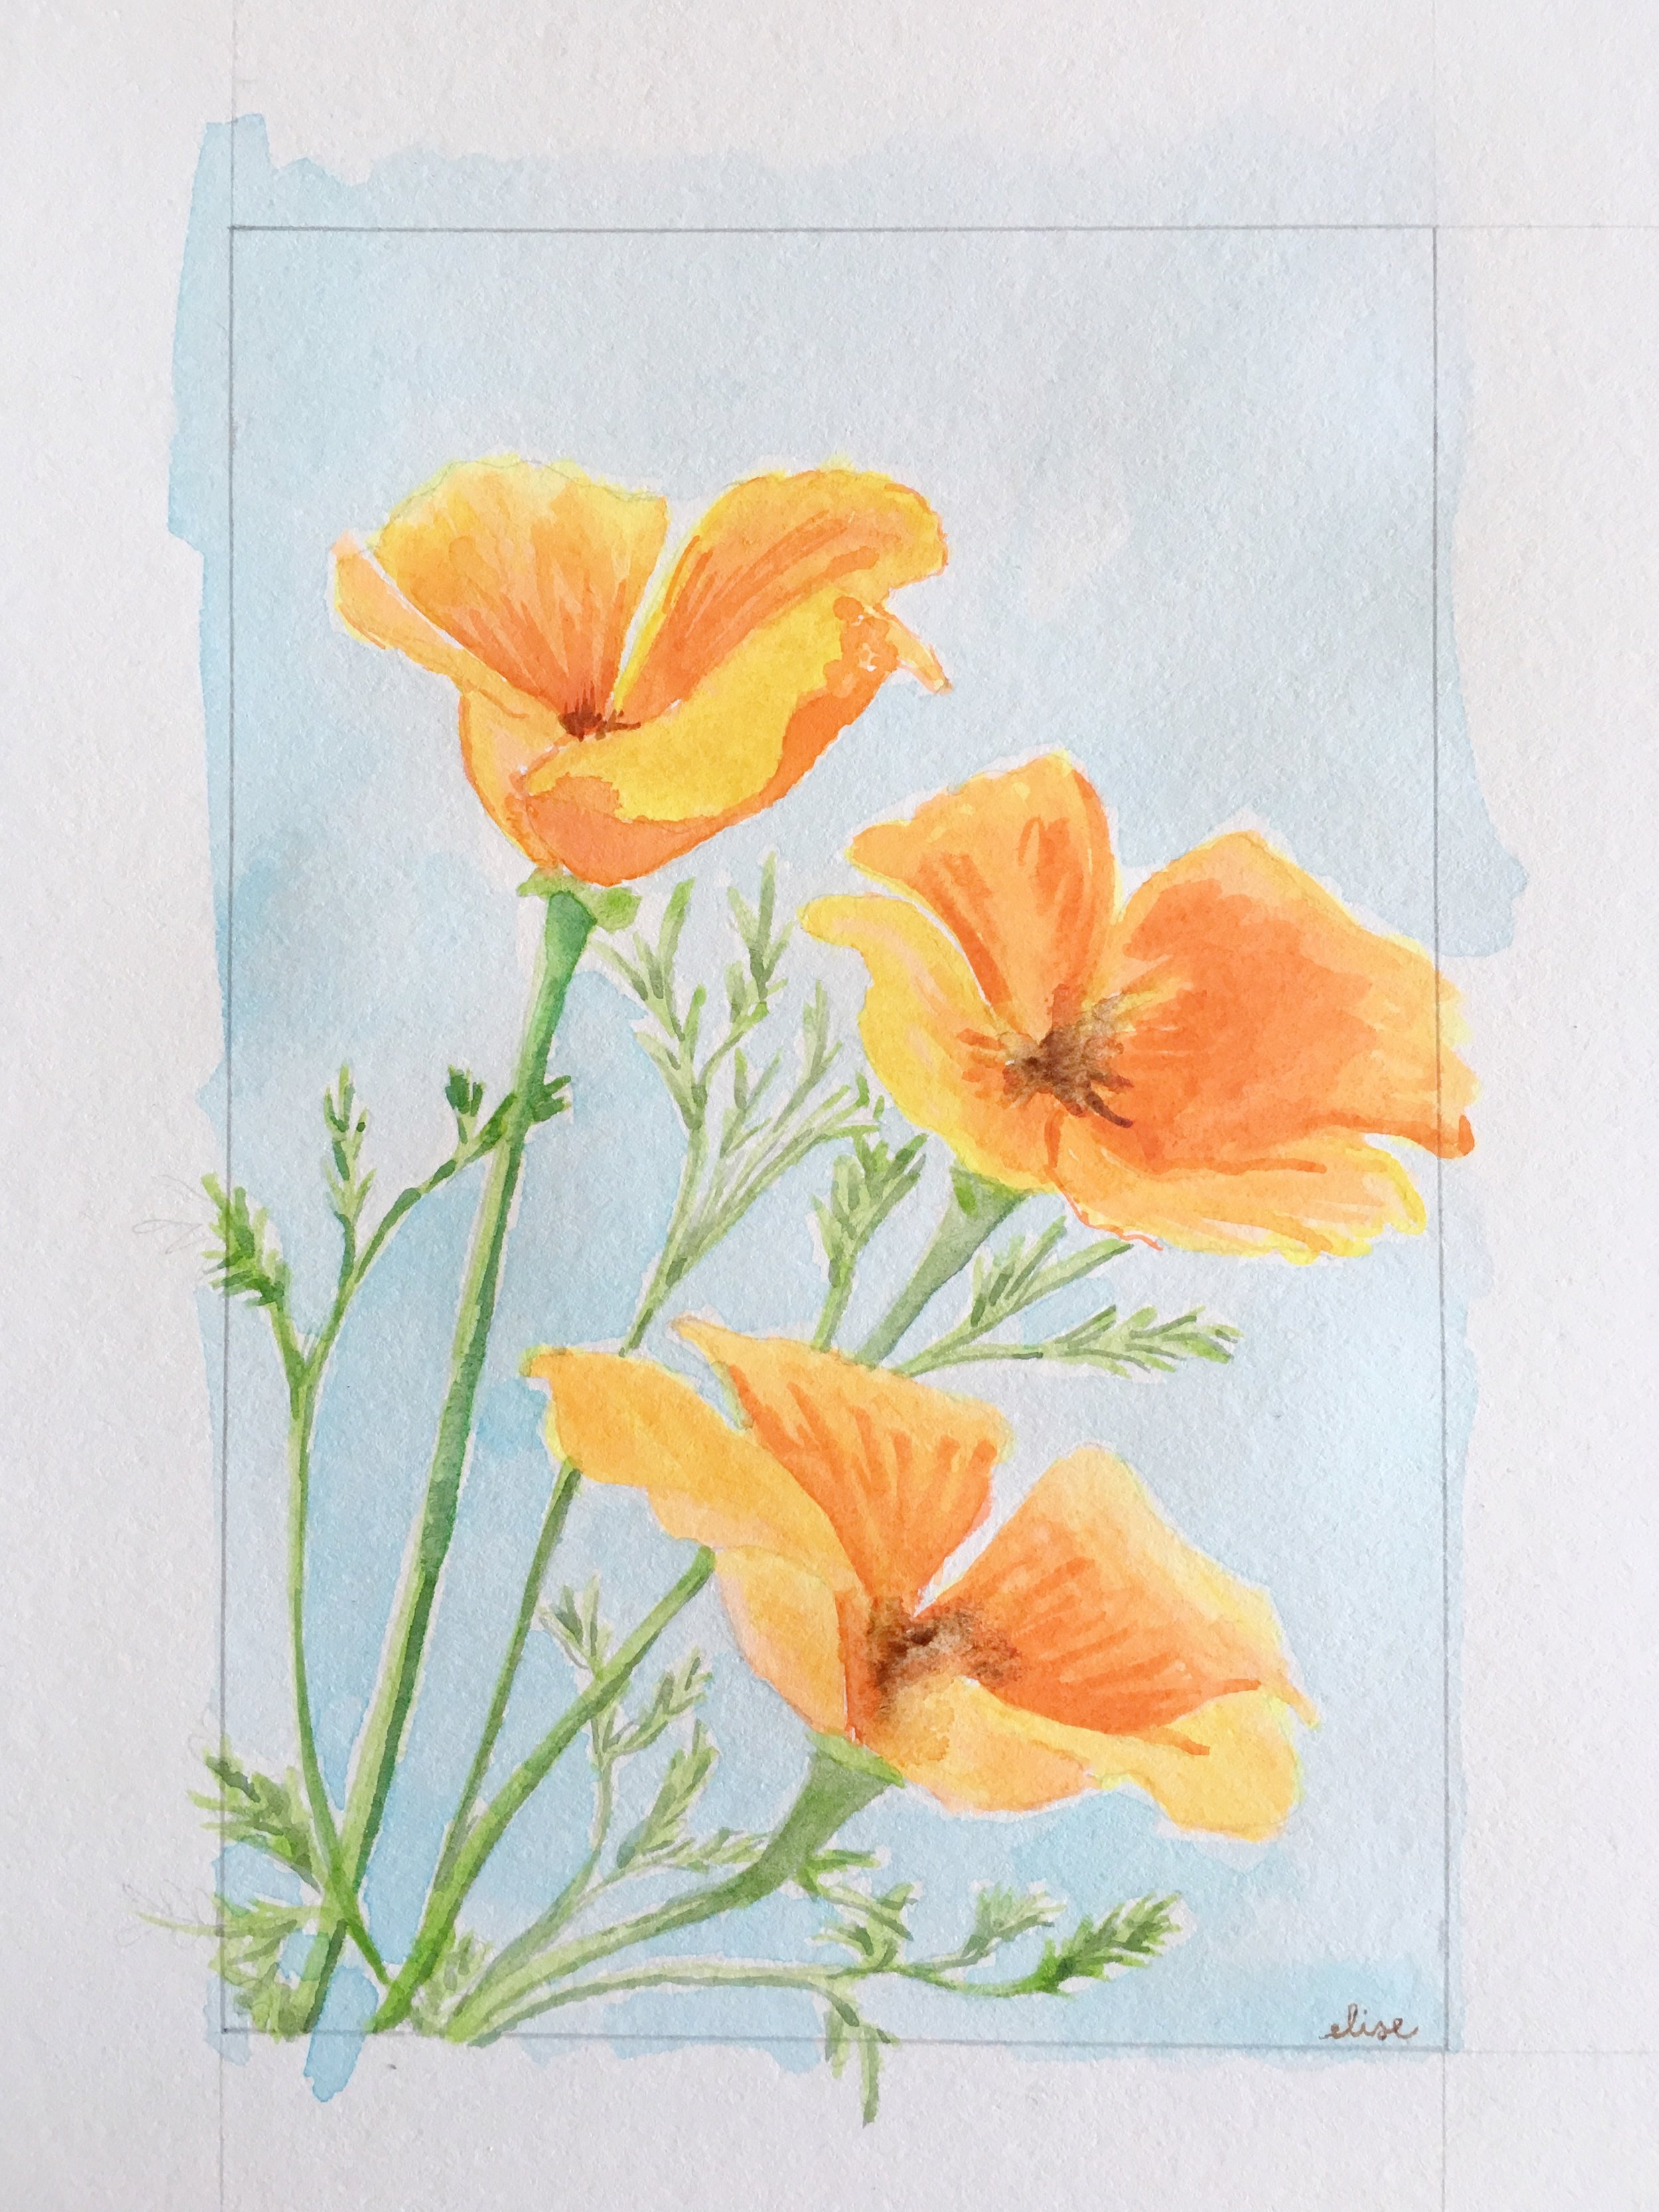 california-golden-poppies-state-flower-watercolor-painting-drawing-elisemade-by-elise-loepz